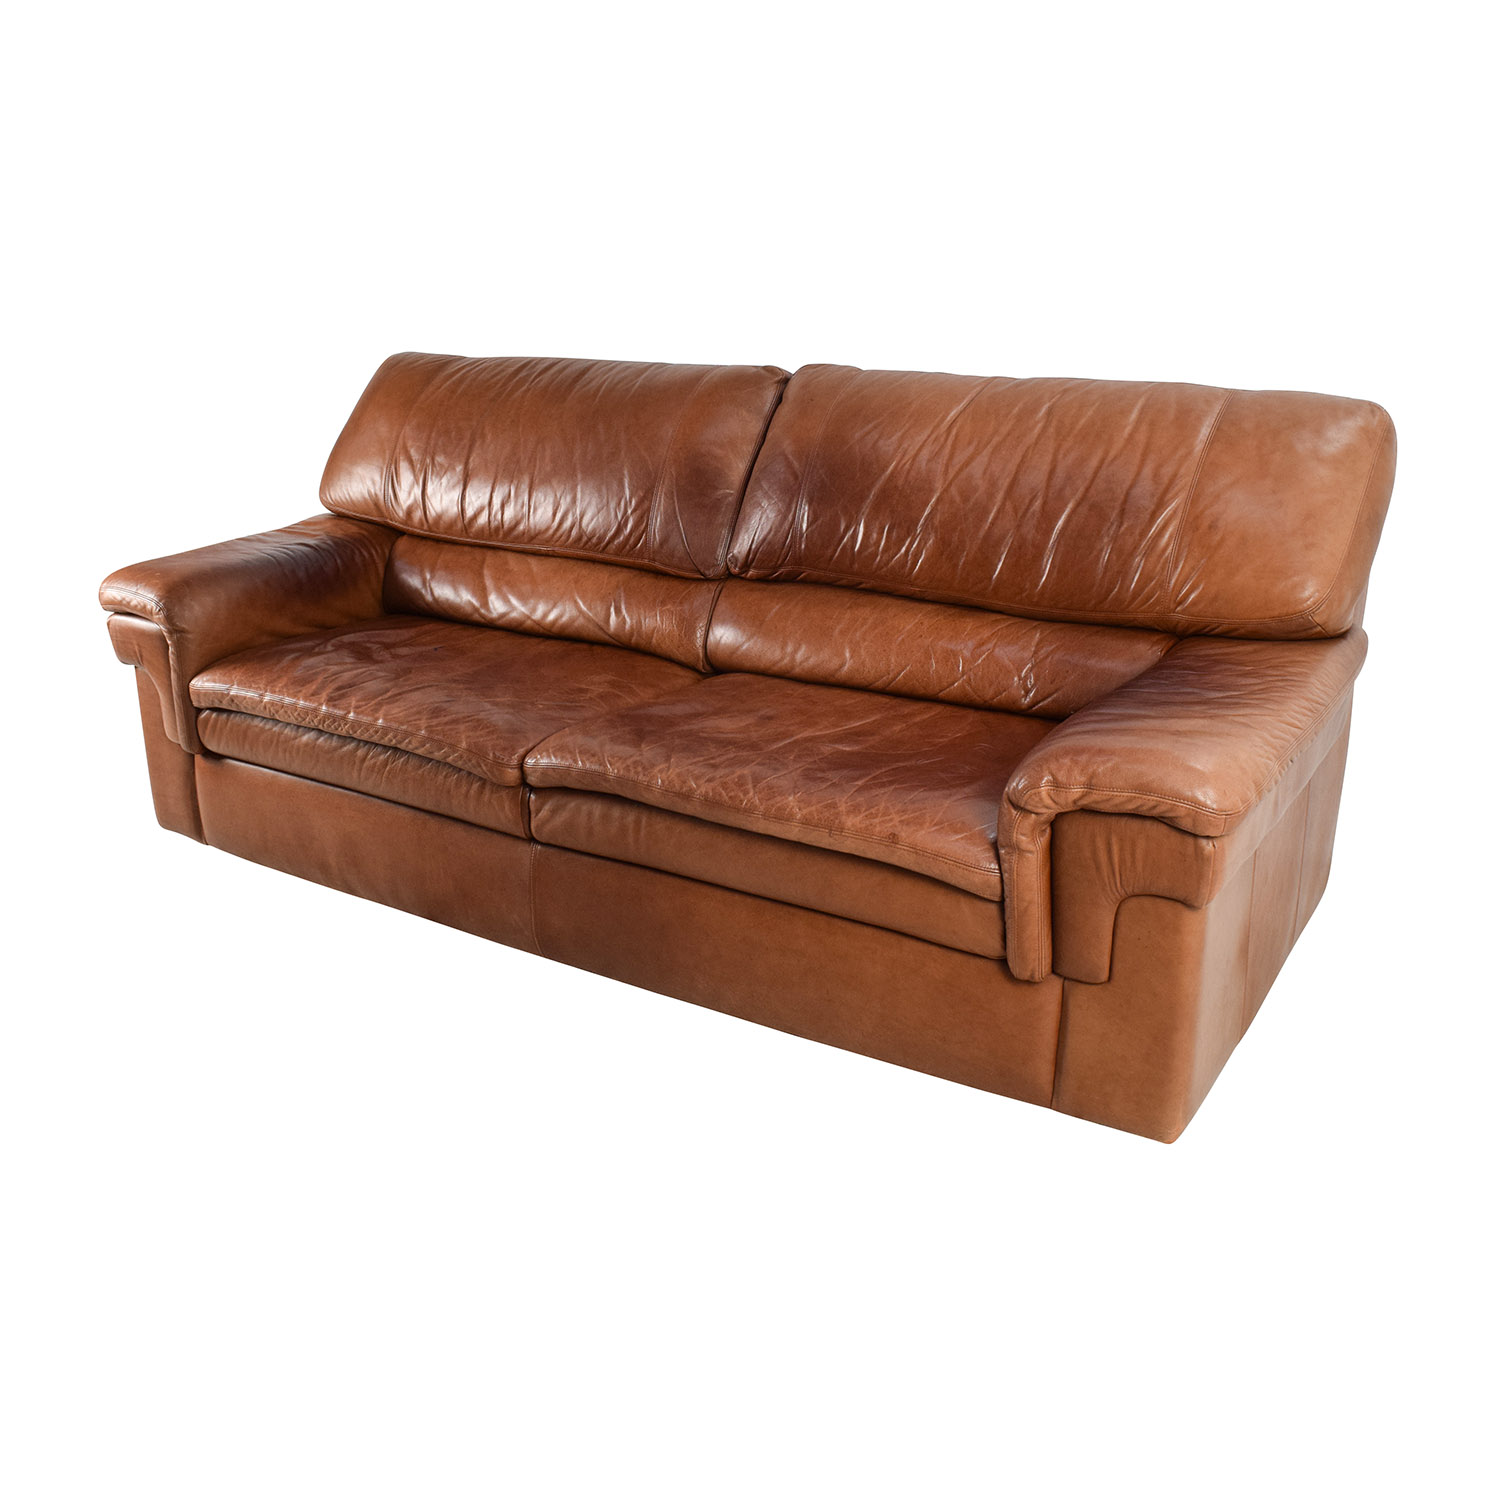 71 off classic cherry brown leather sofa sofas for Classic loveseat